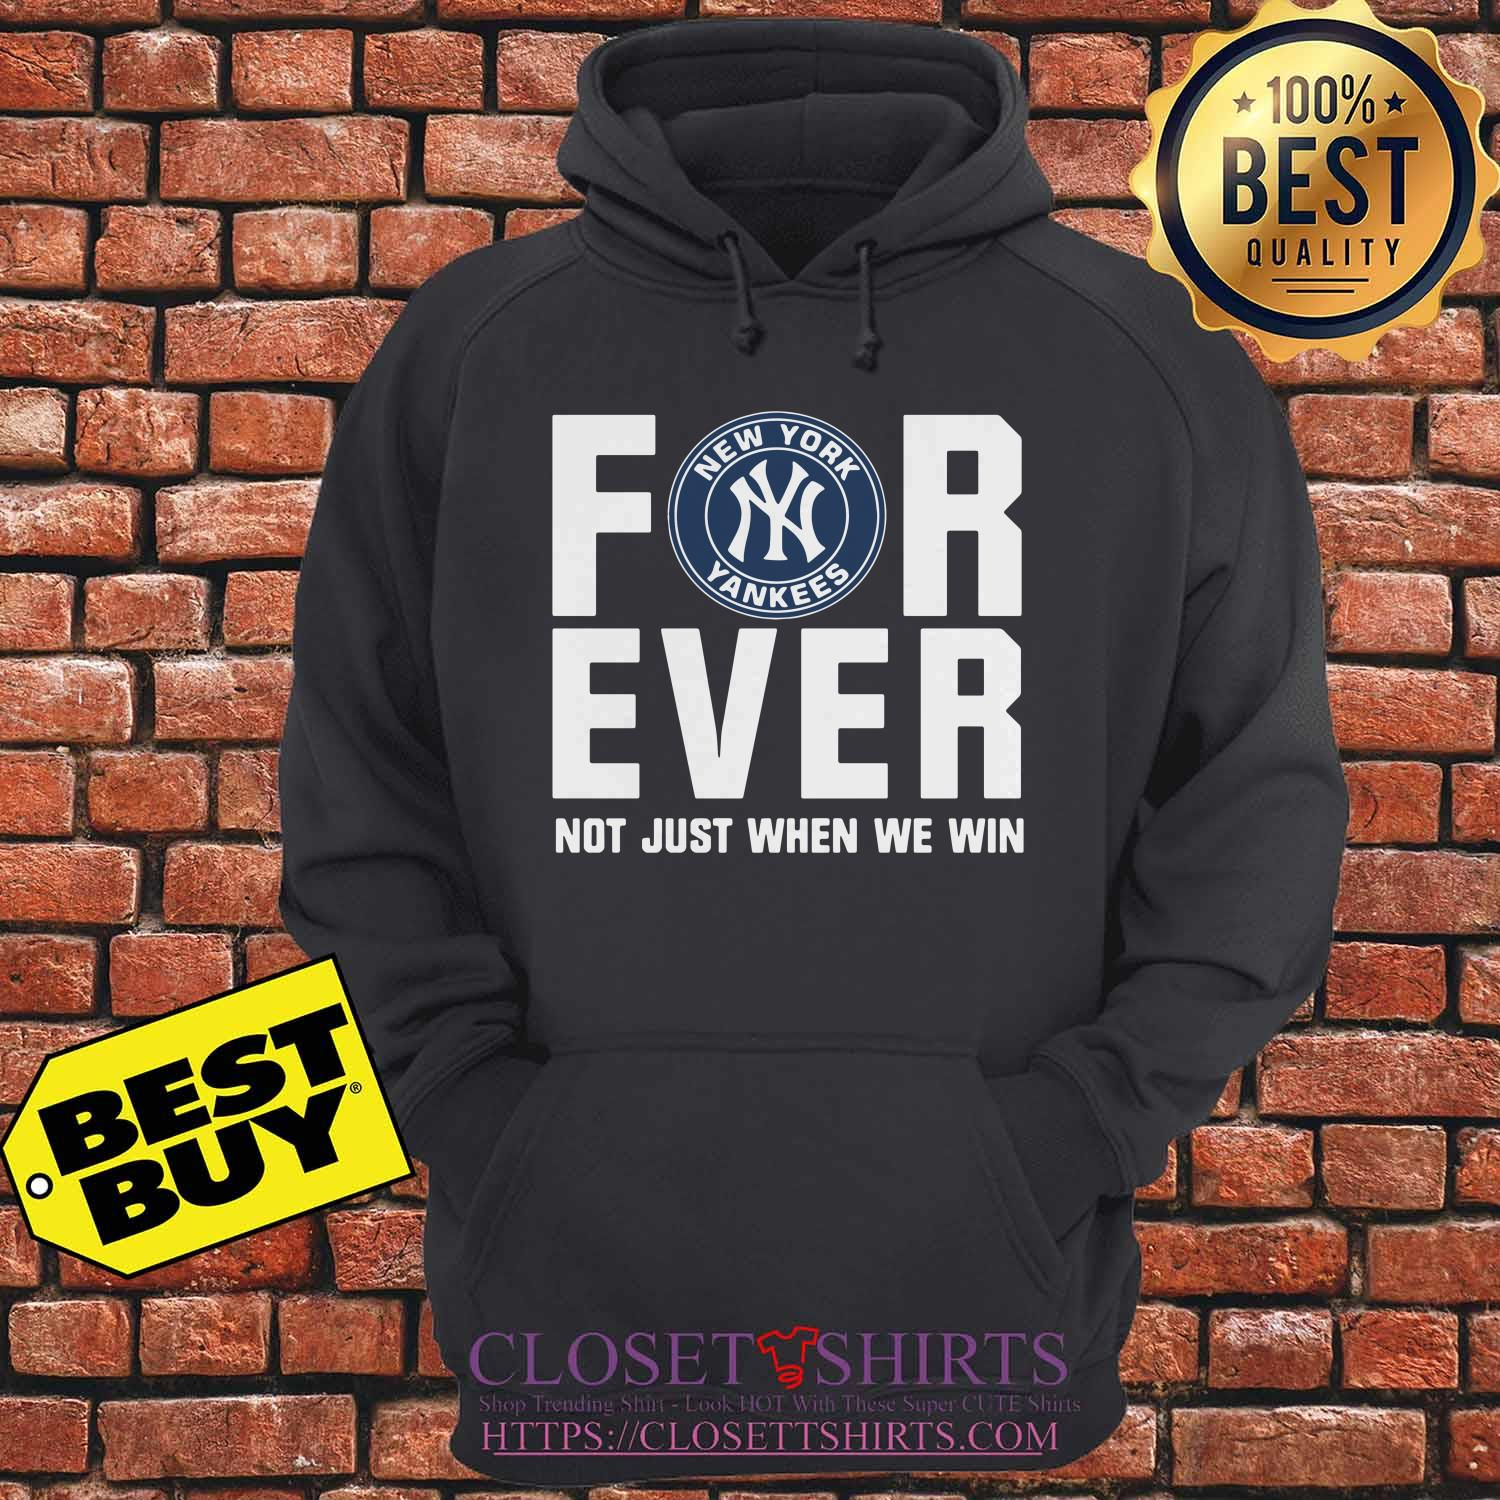 New York Yankees Forever Not Just Win Hoodie